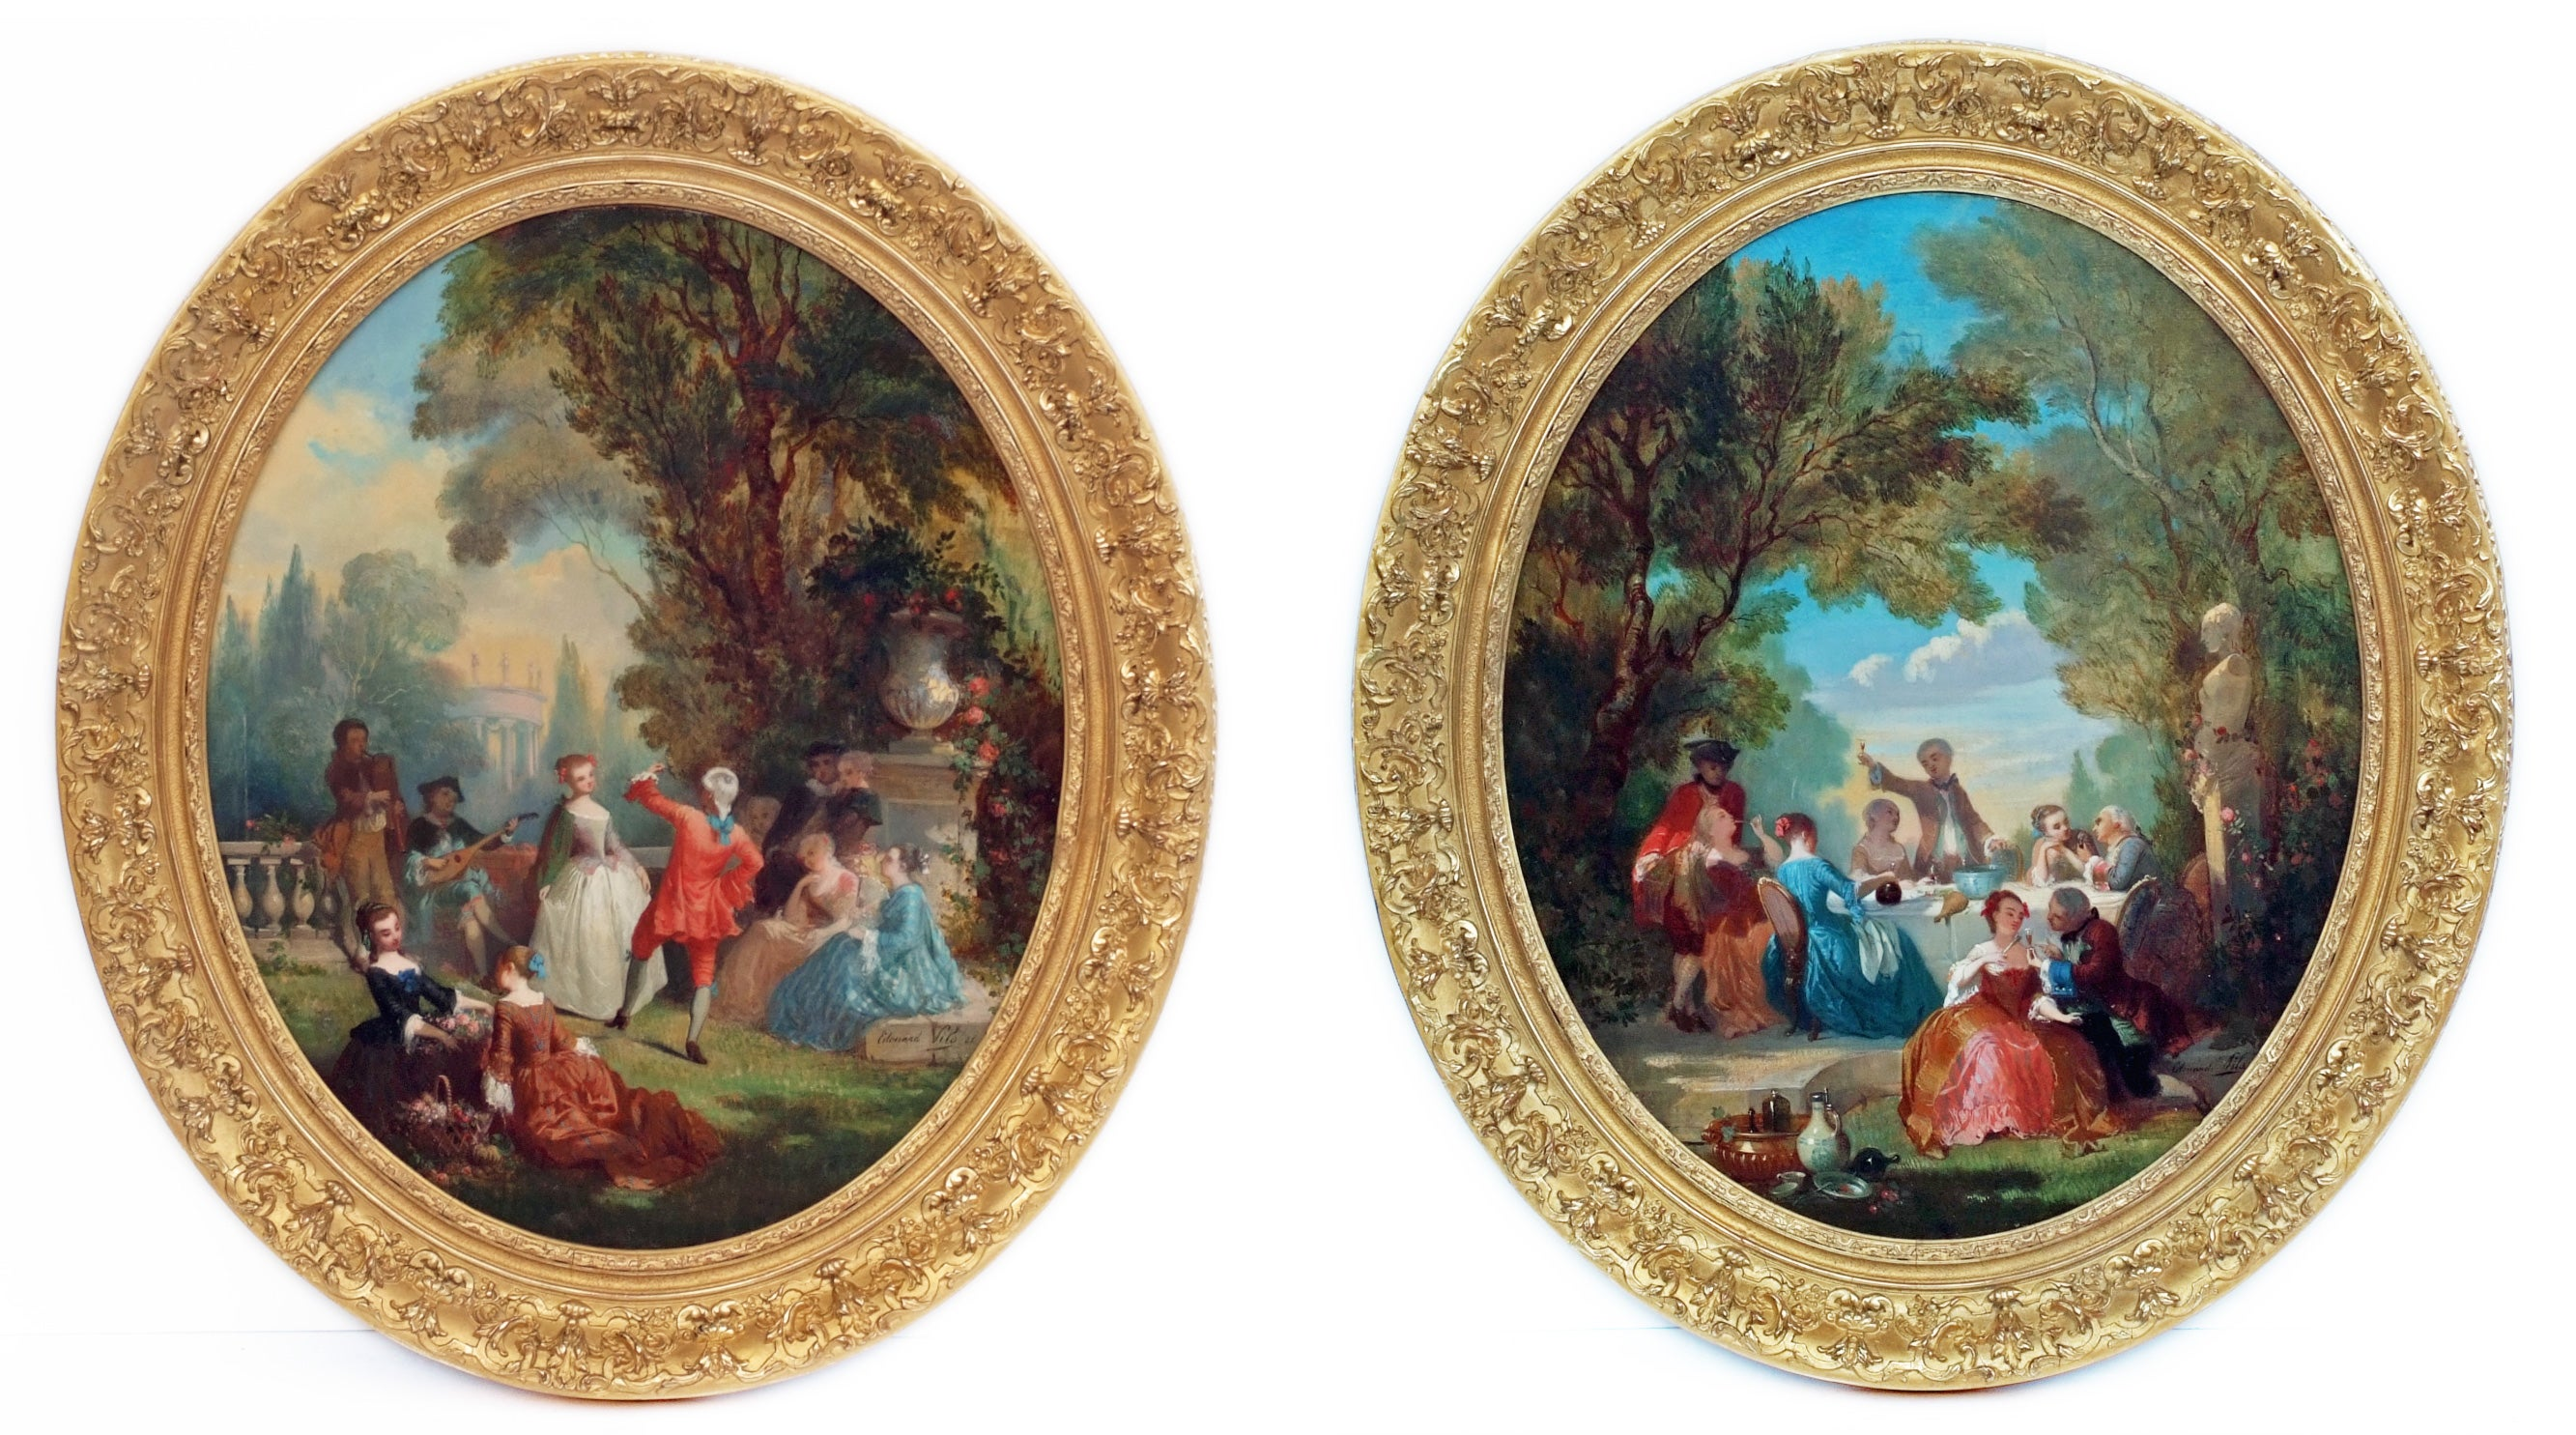 Painting 19th Century Genre Scenes showing 18th Century Period